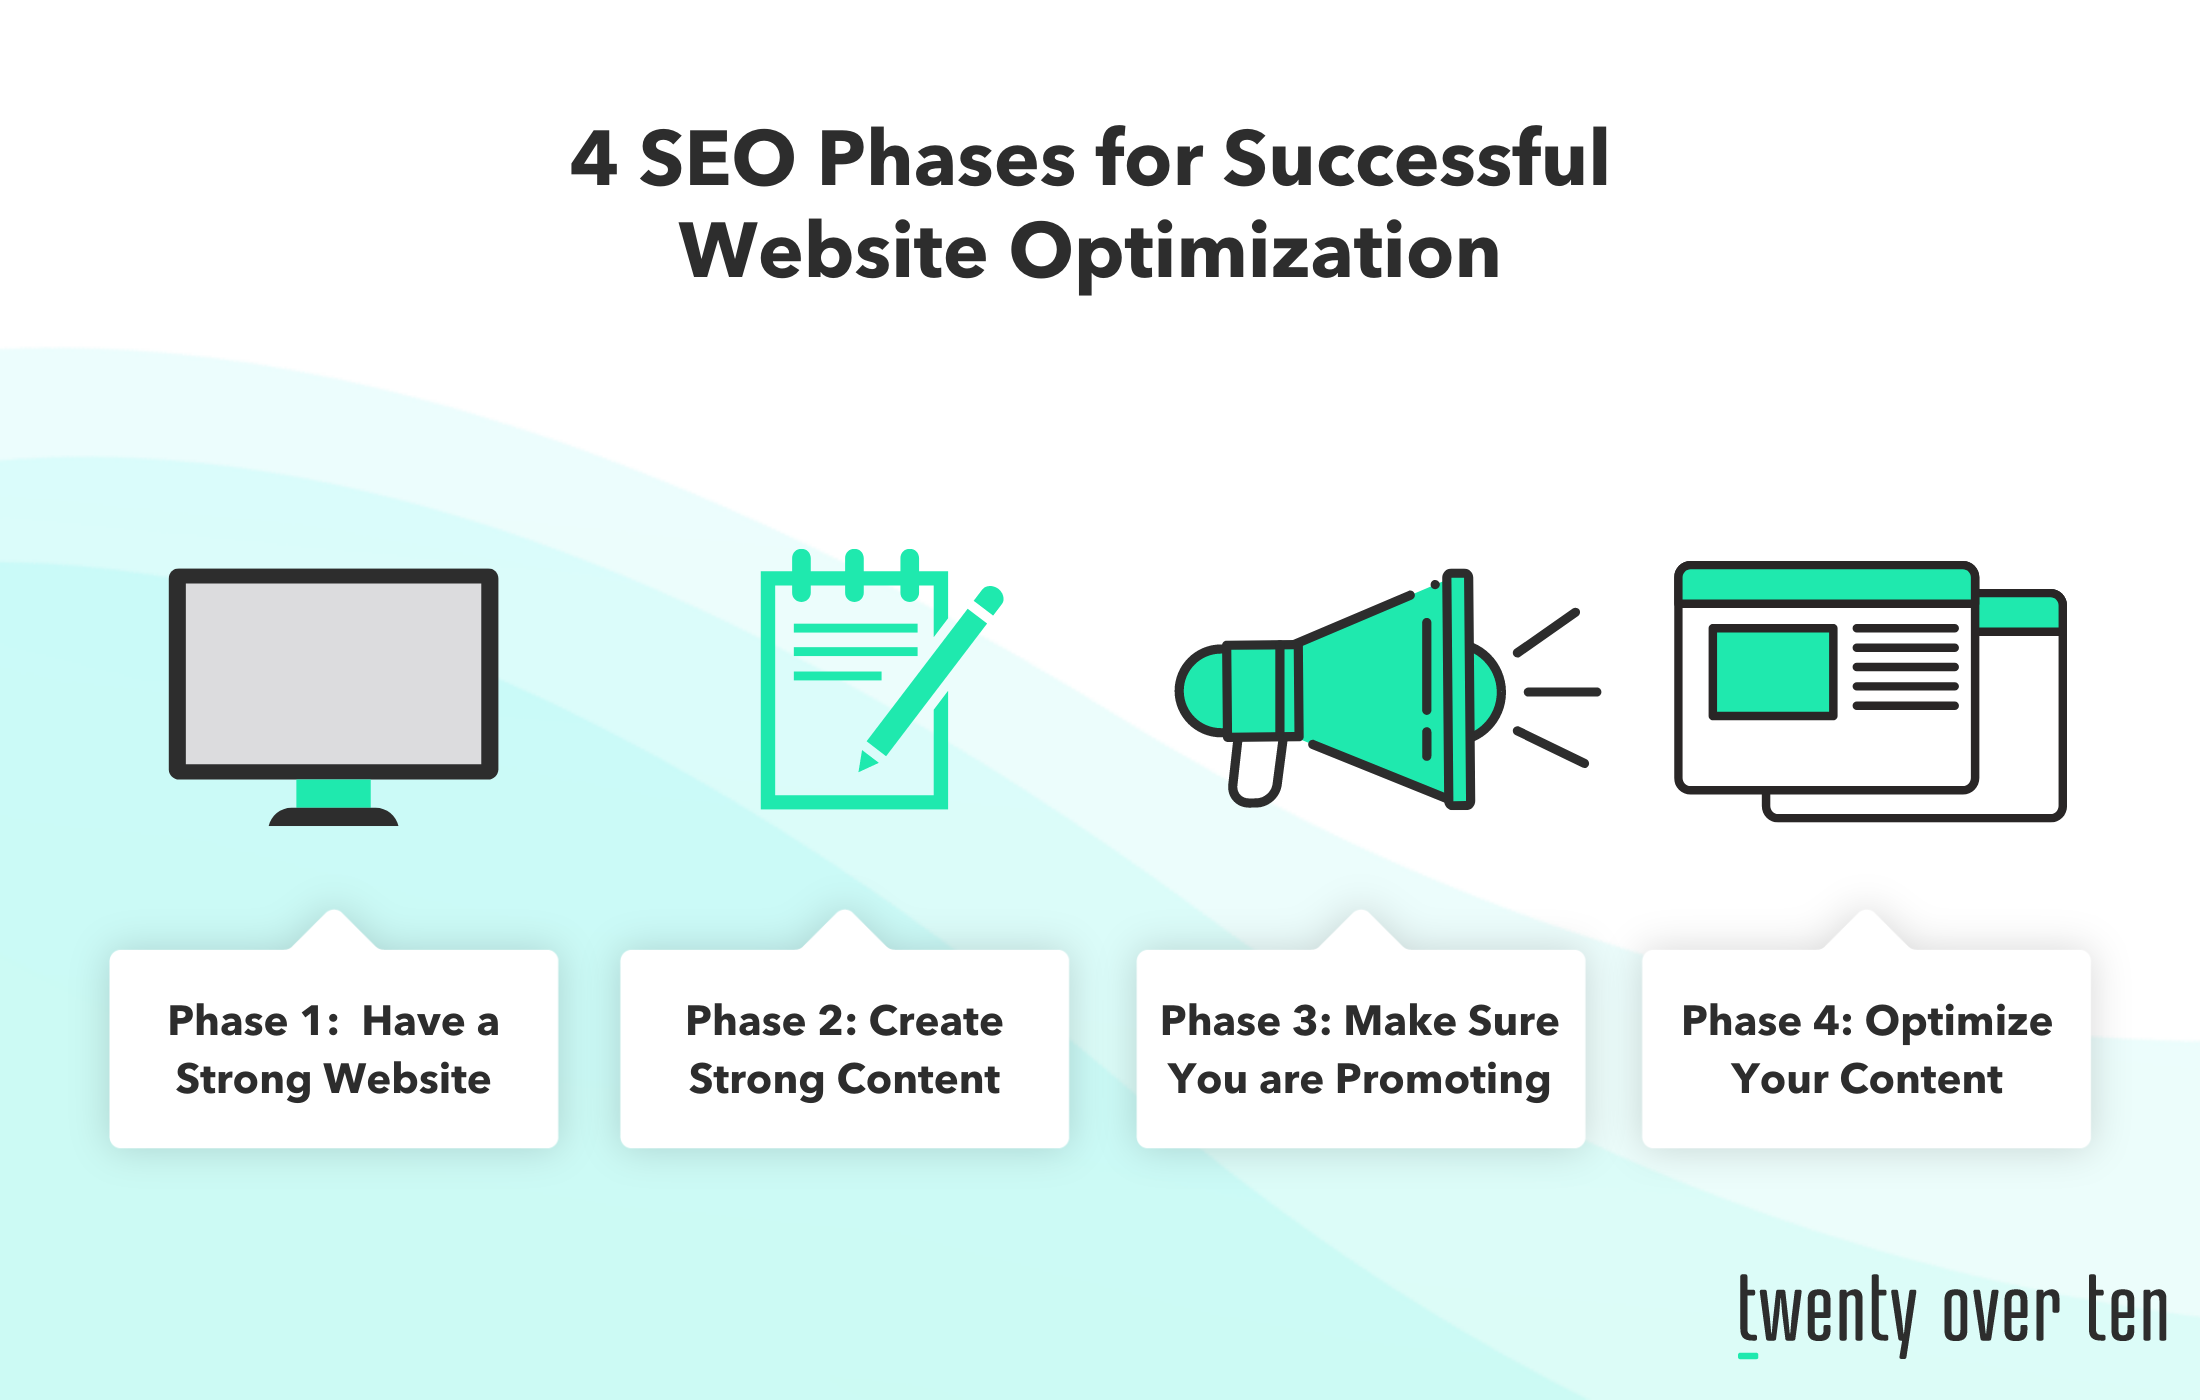 4 SEO phases